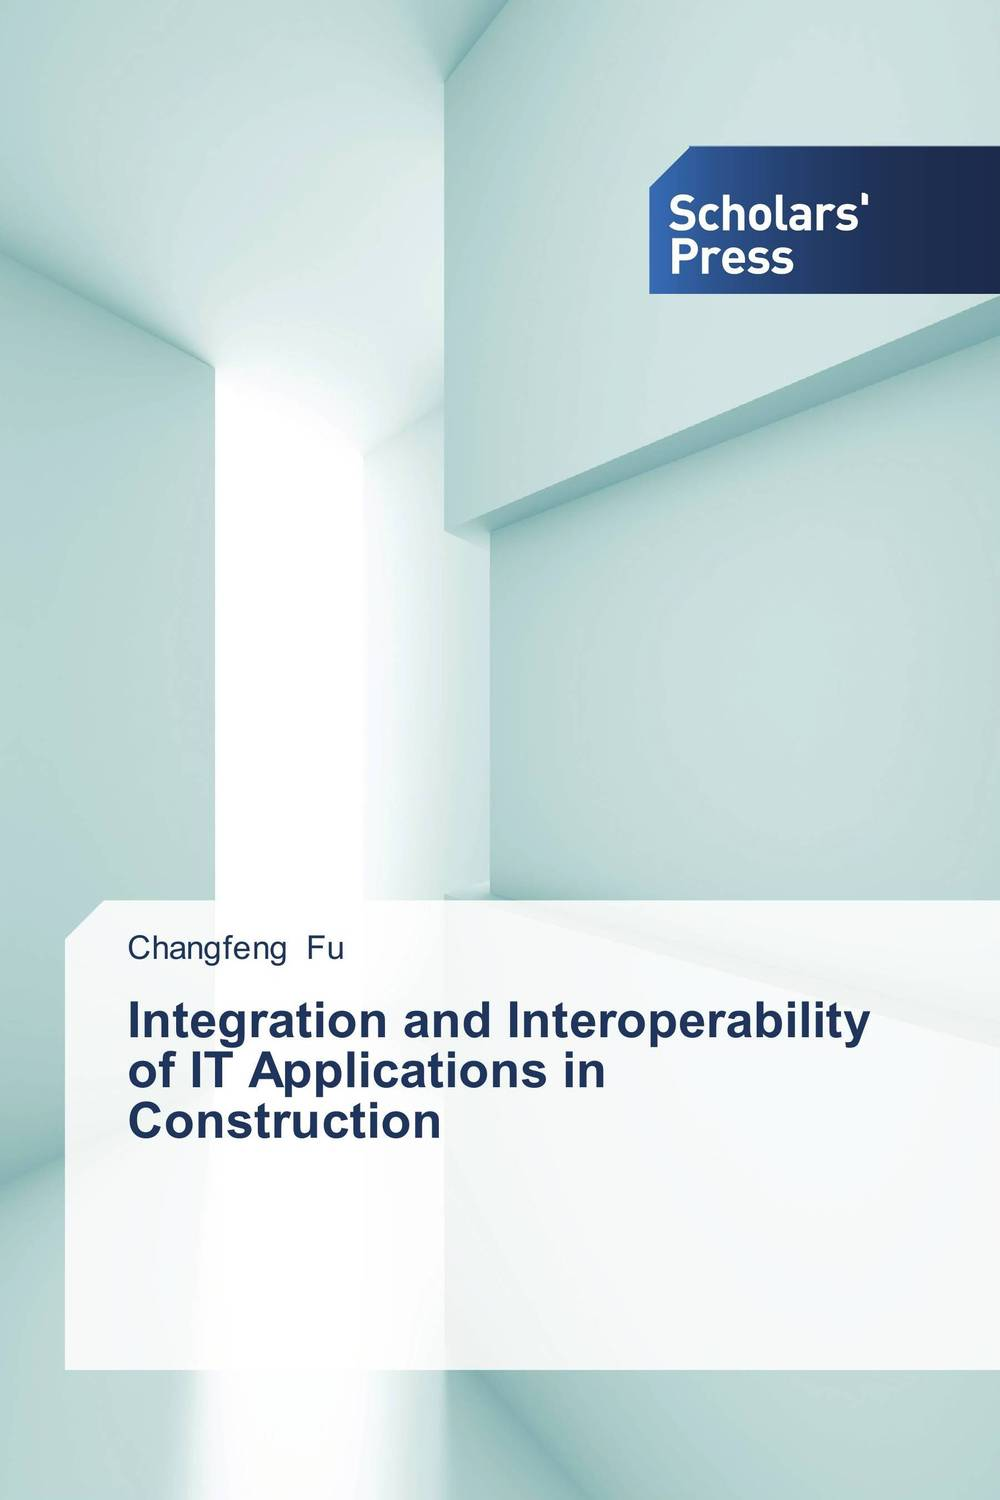 Integration and Interoperability of IT Applications  in Construction